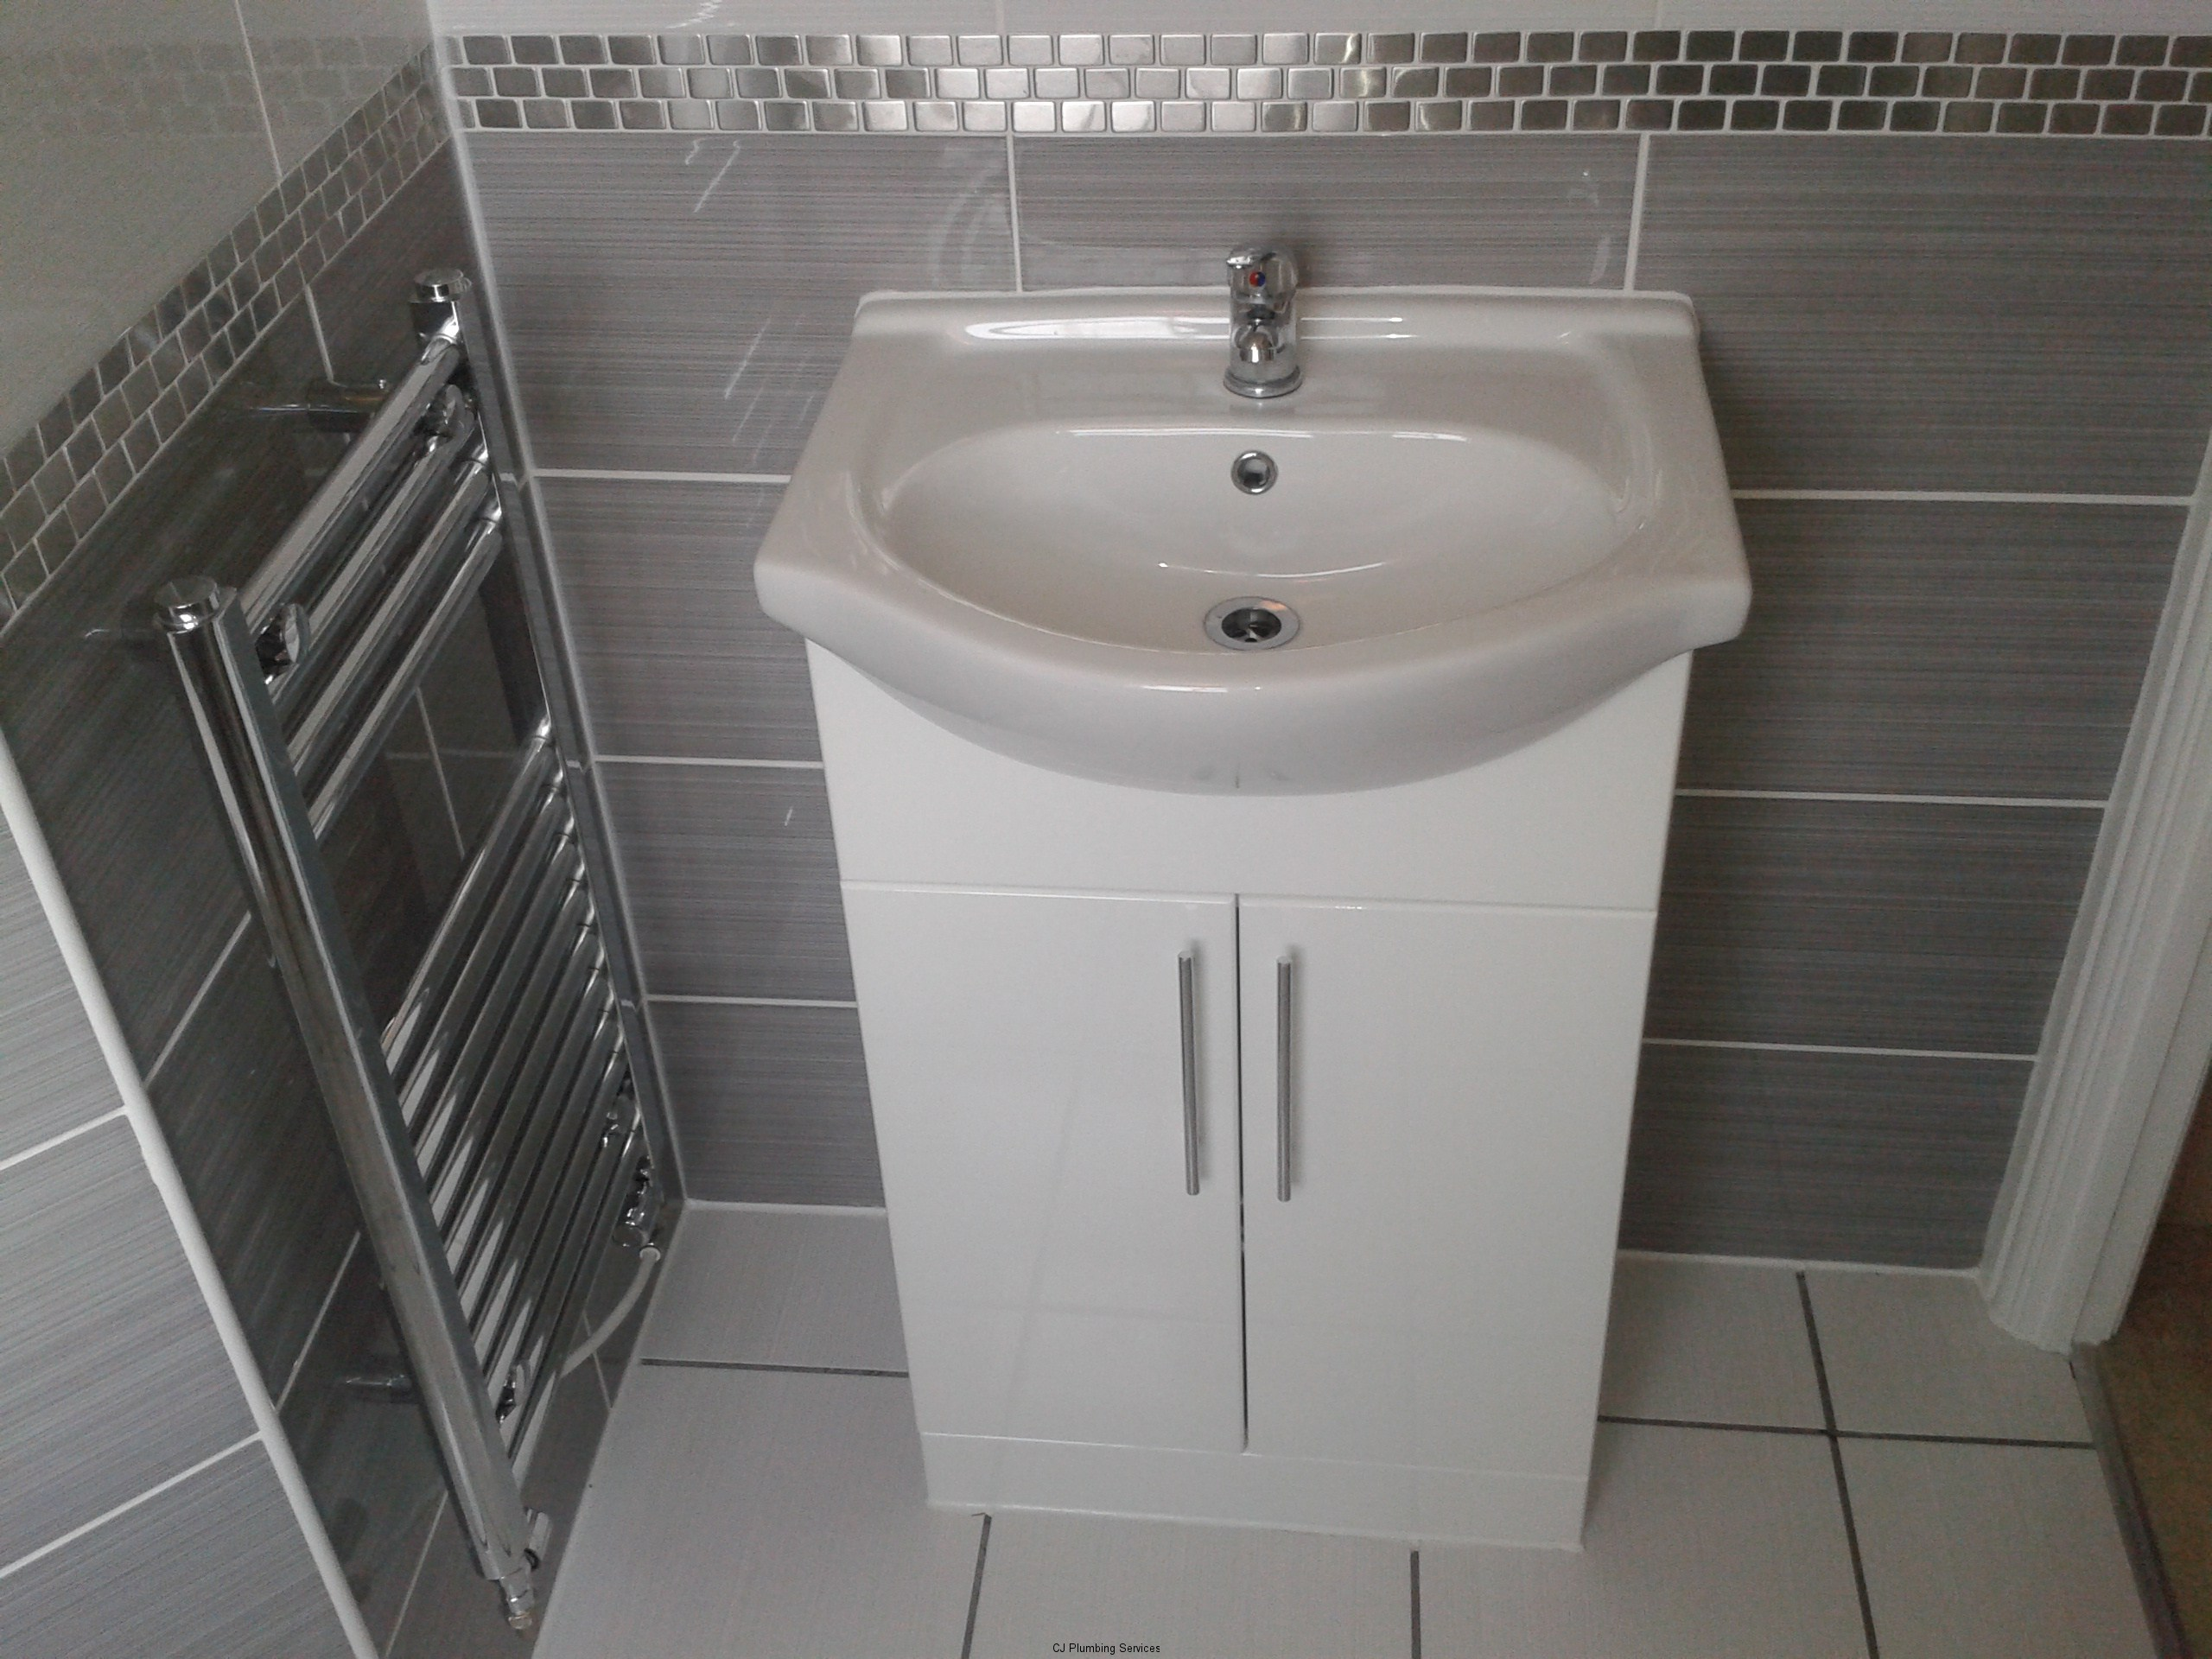 Bathrooms cj plumbing services corby kettering and for Bathroom design kettering